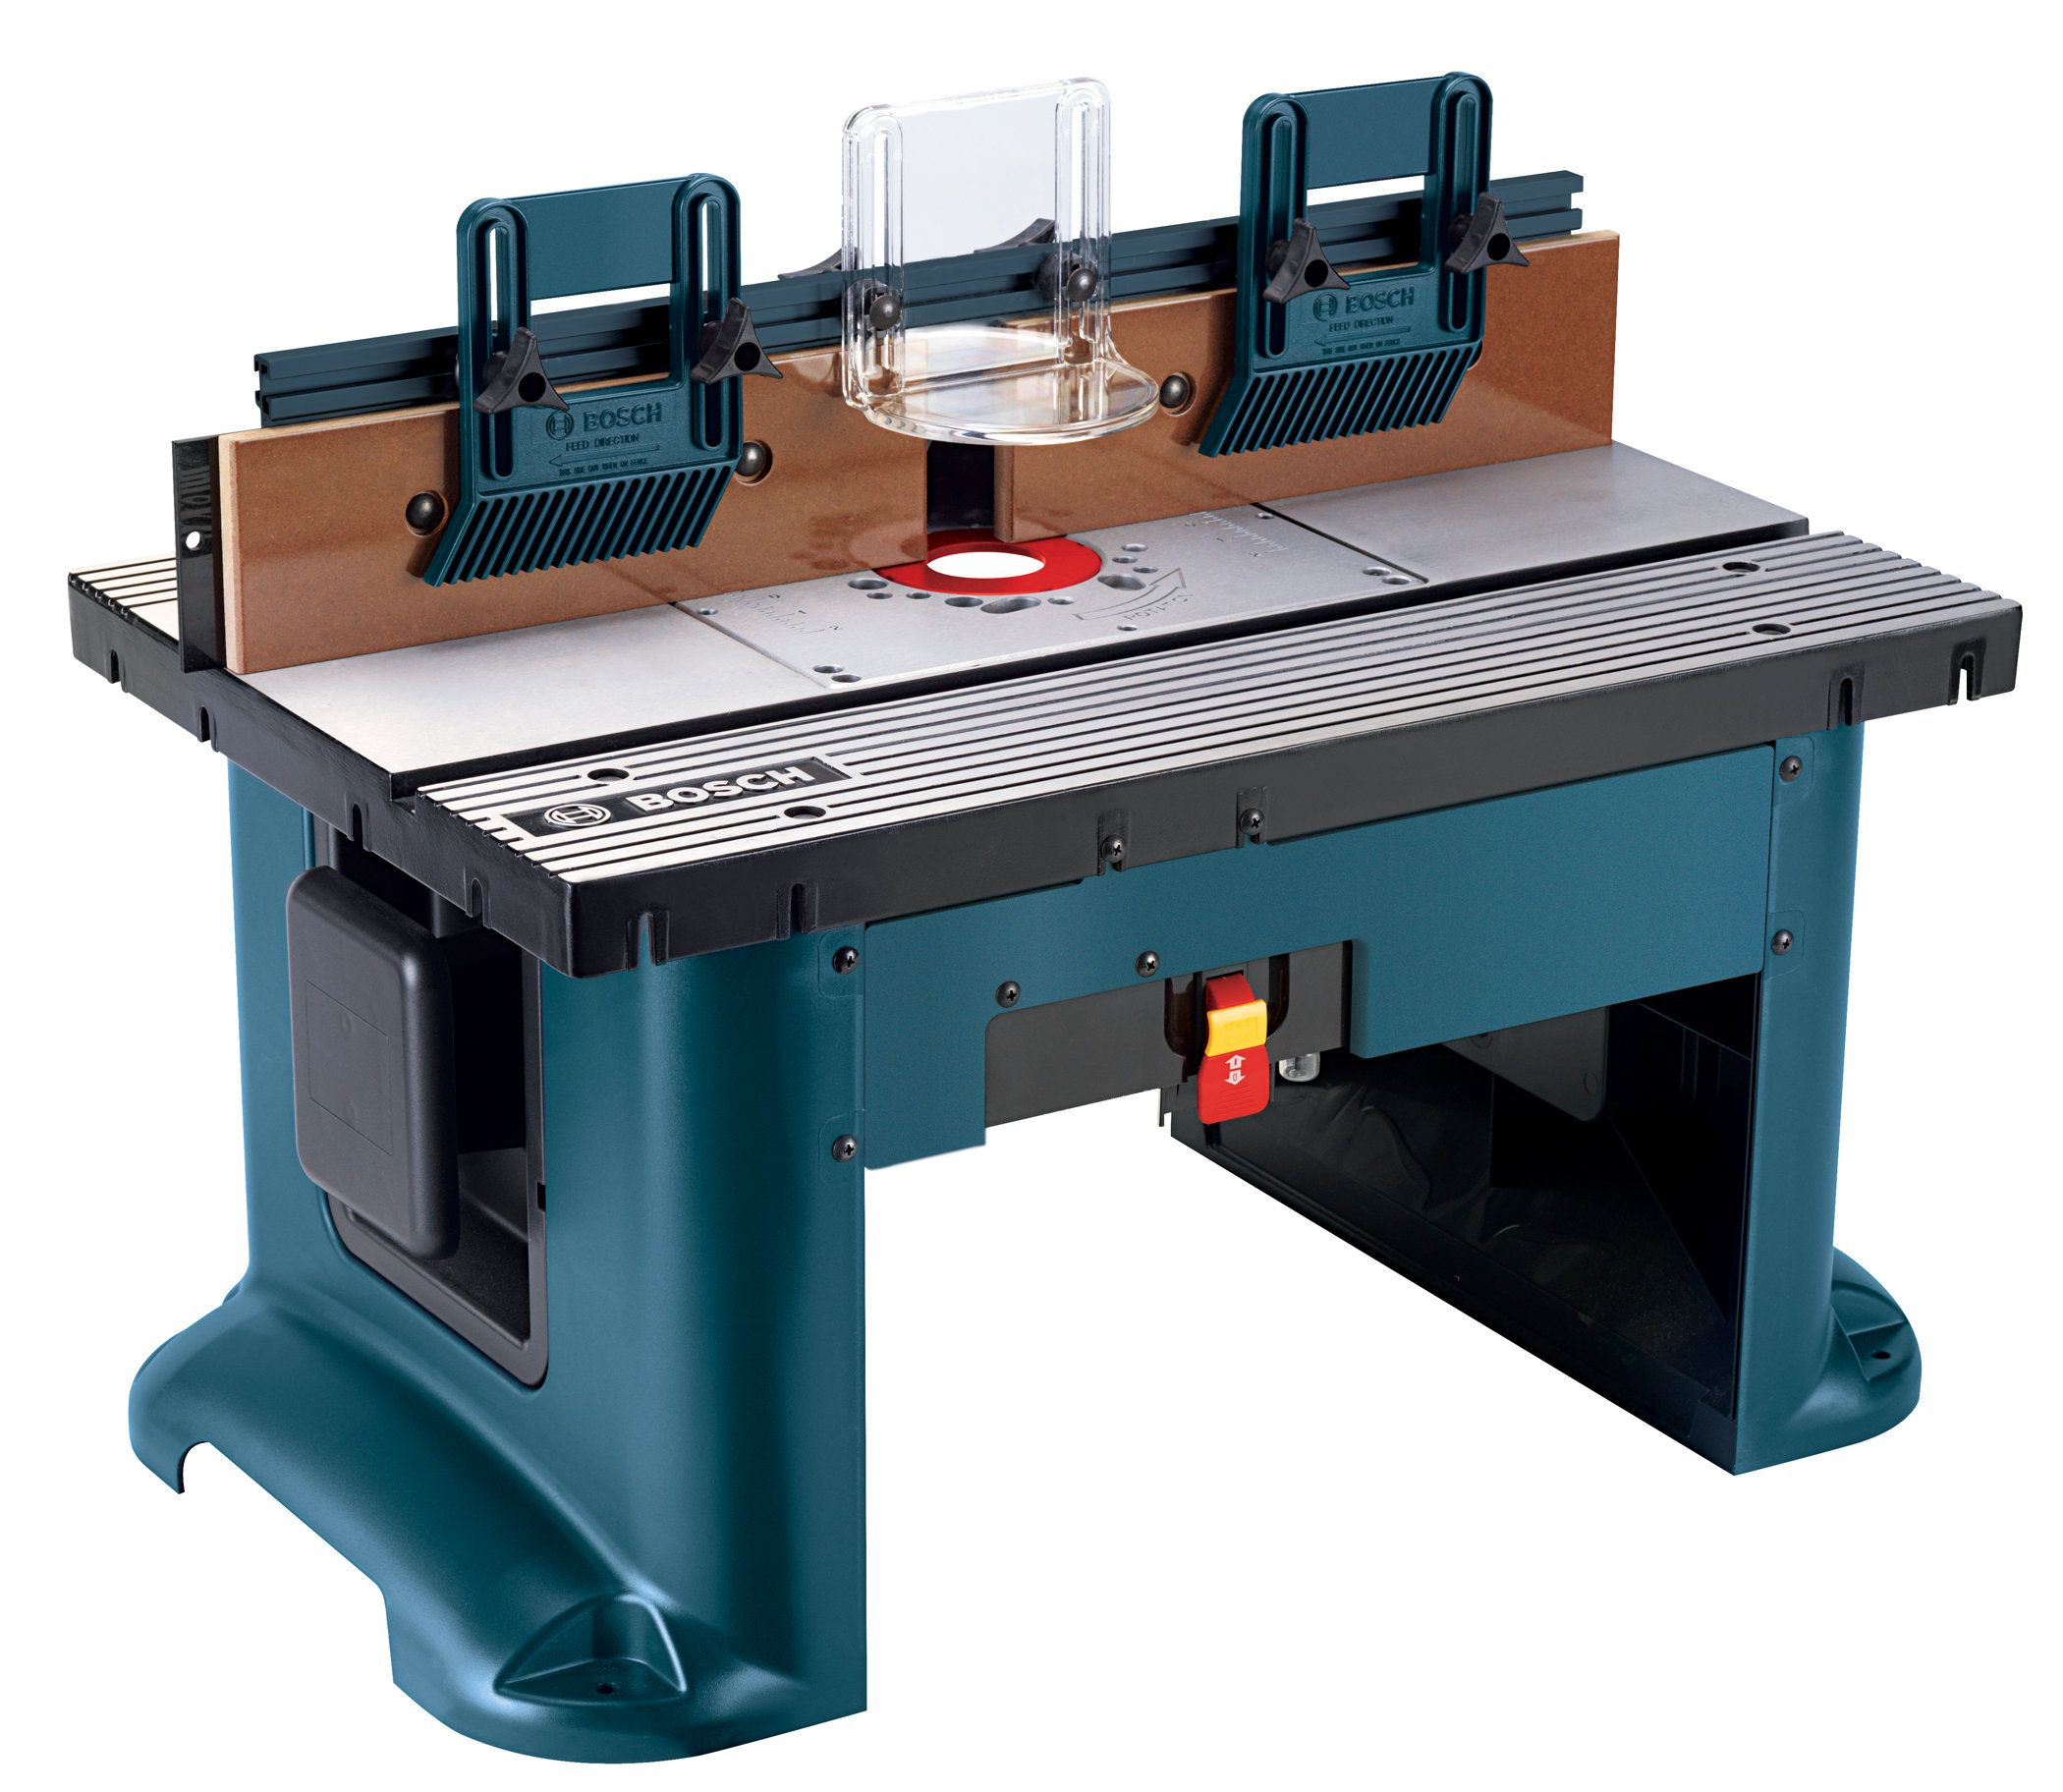 Save up to 62 off of bosch benchtop router table at amazon save up to 62 off of bosch benchtop router table at amazon greentooth